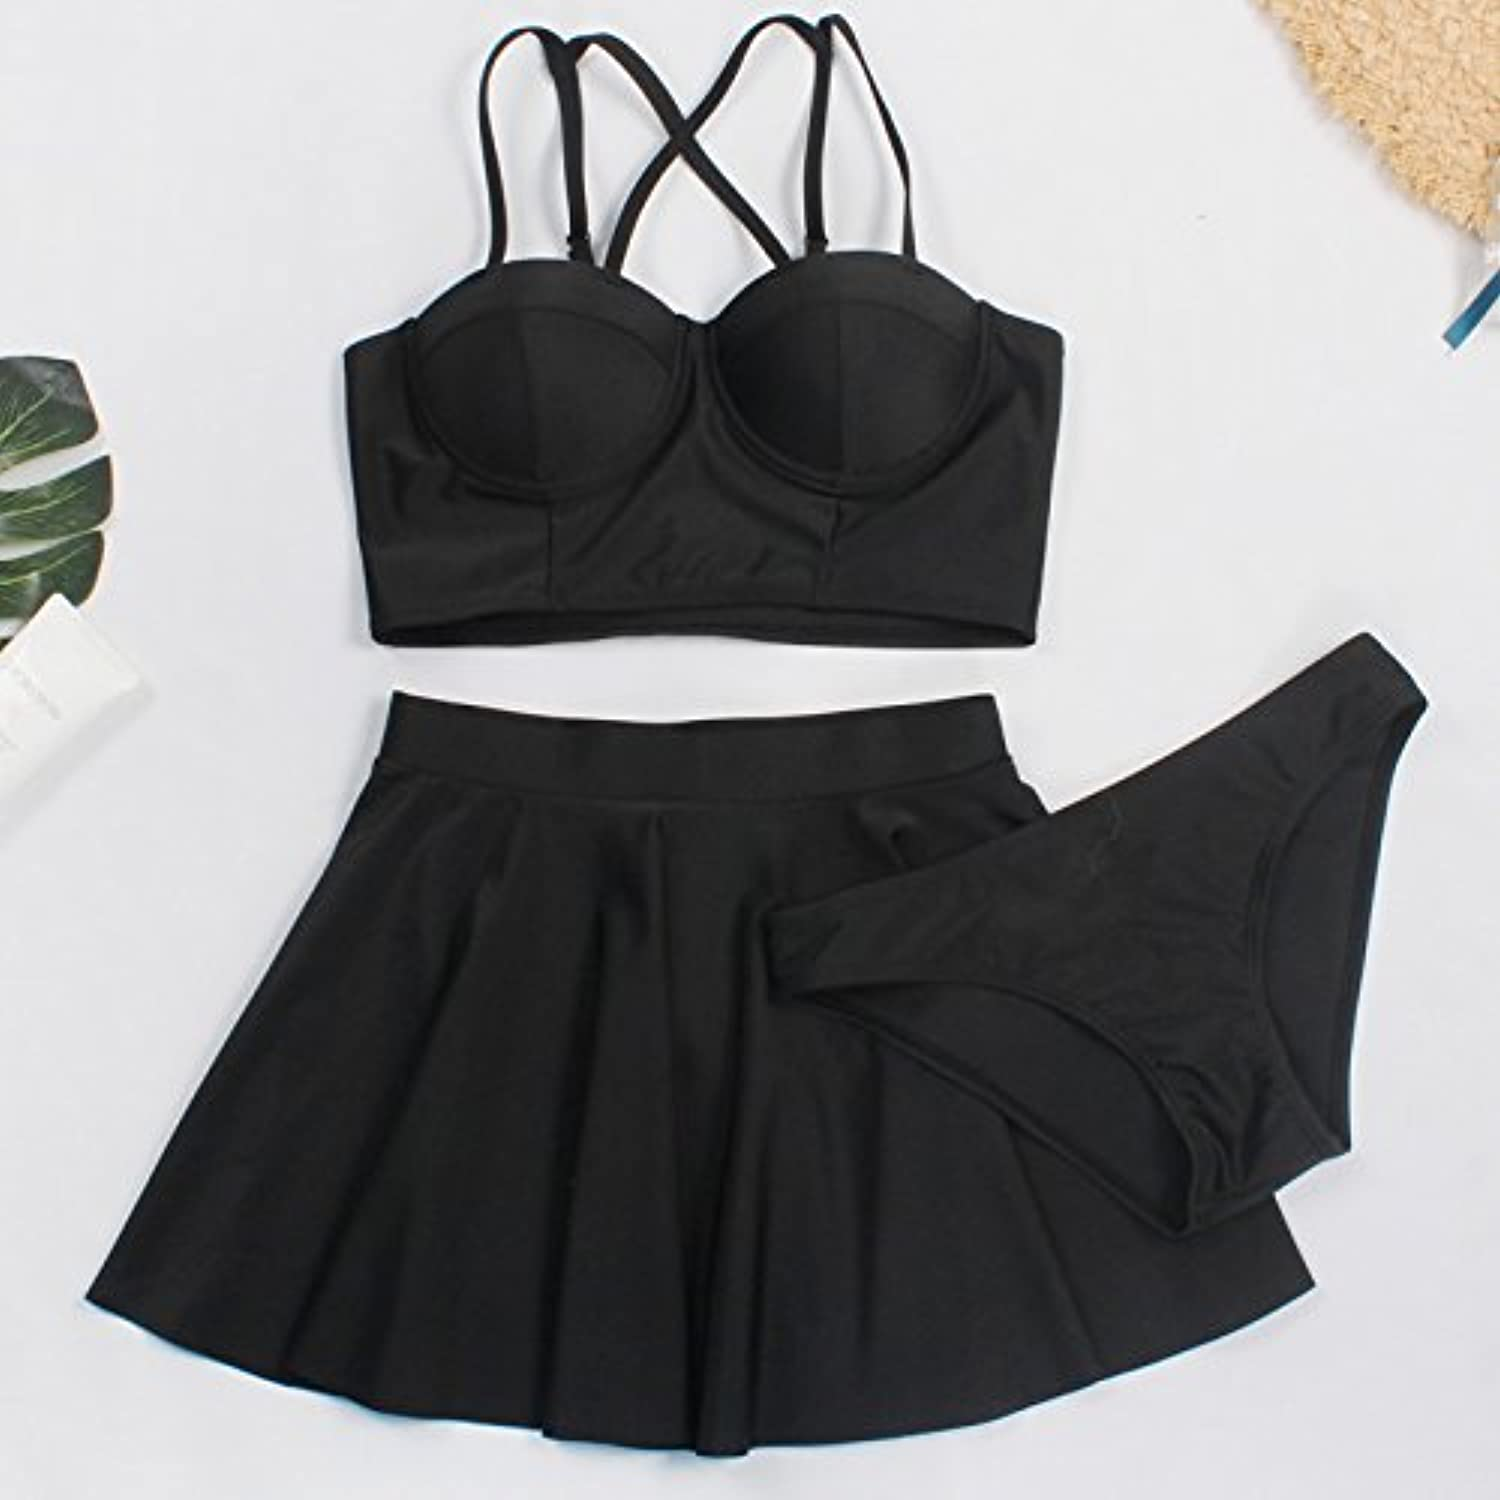 GAOLIM Skirt Style Split Swimsuit Female ThreePiece Small Chest Gather Together The Bubbling Hot Spring Steel